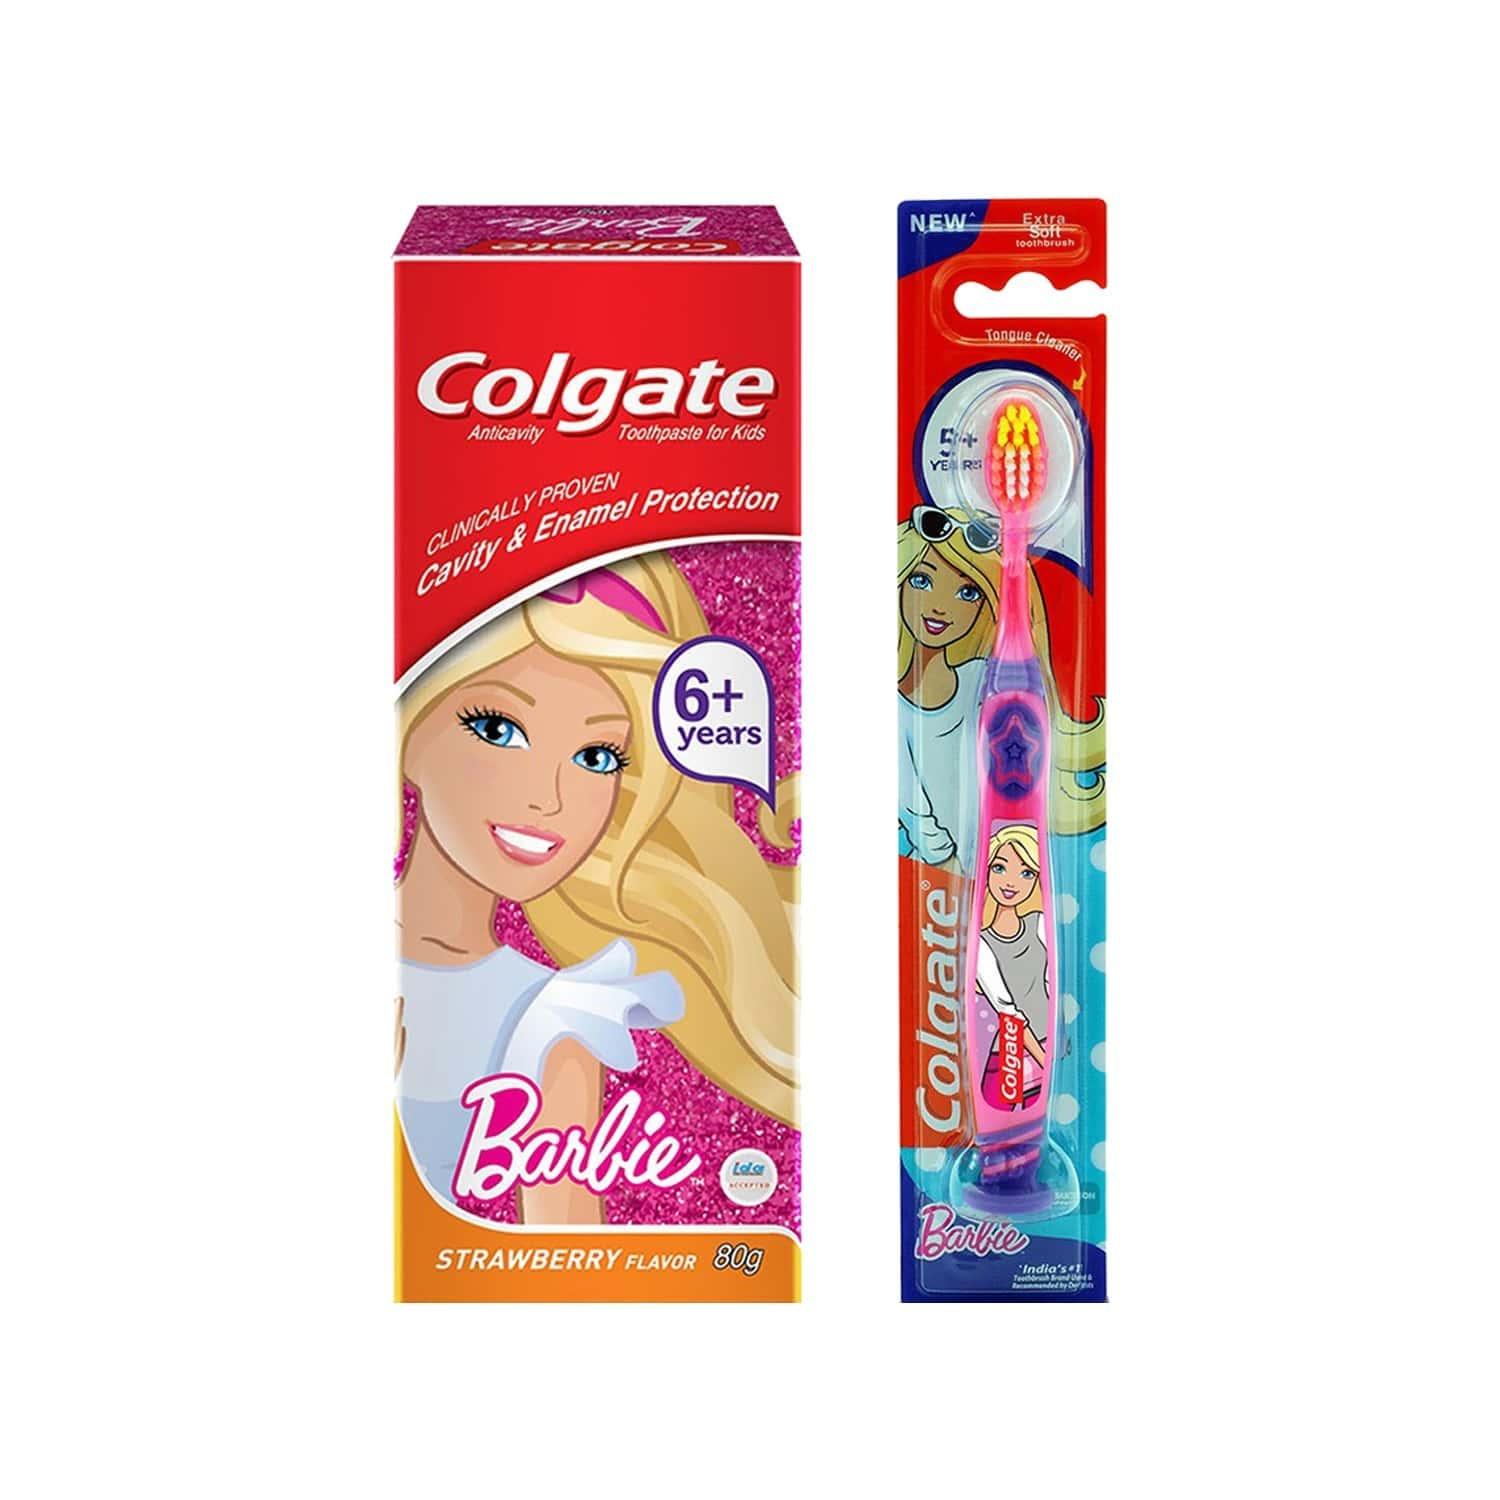 Colgate Kid's Anticavity Barbie Toothpaste (6+ Year) With Barbie Soft Bristles Toothbrush - 1 Pc